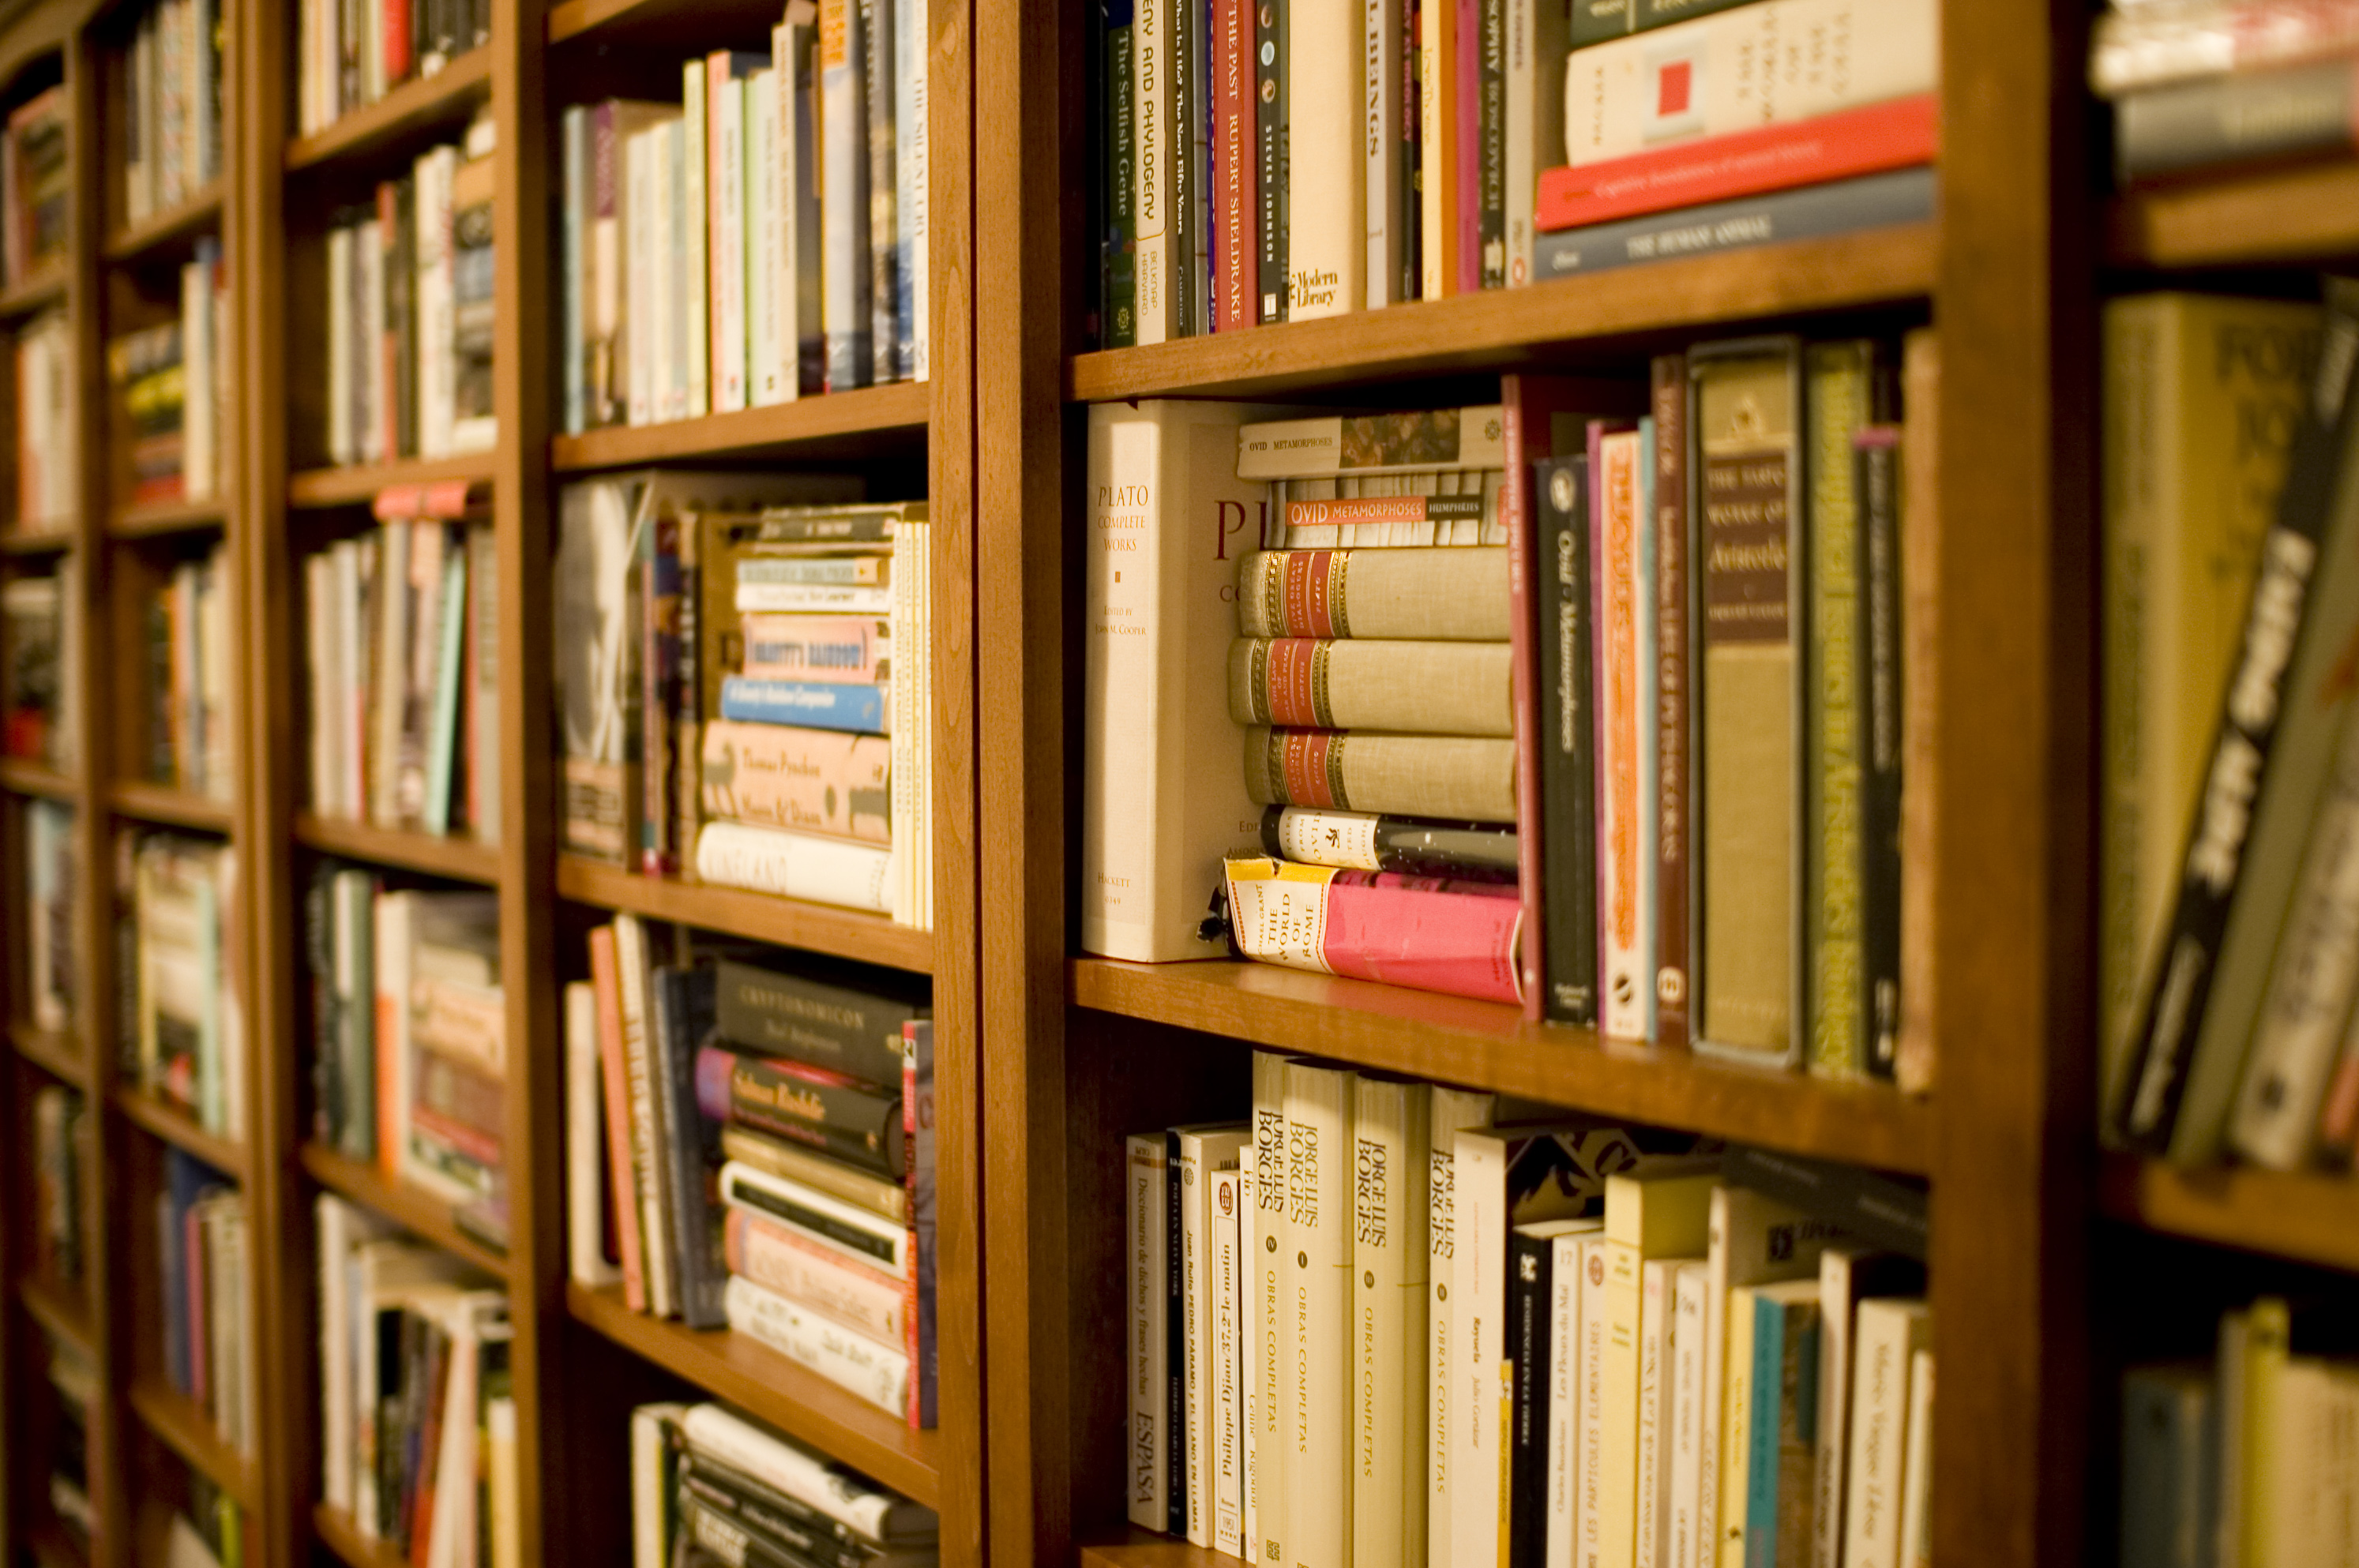 Bookshelves Images Filebookshelfg wikimedia commons filebookshelfg sisterspd